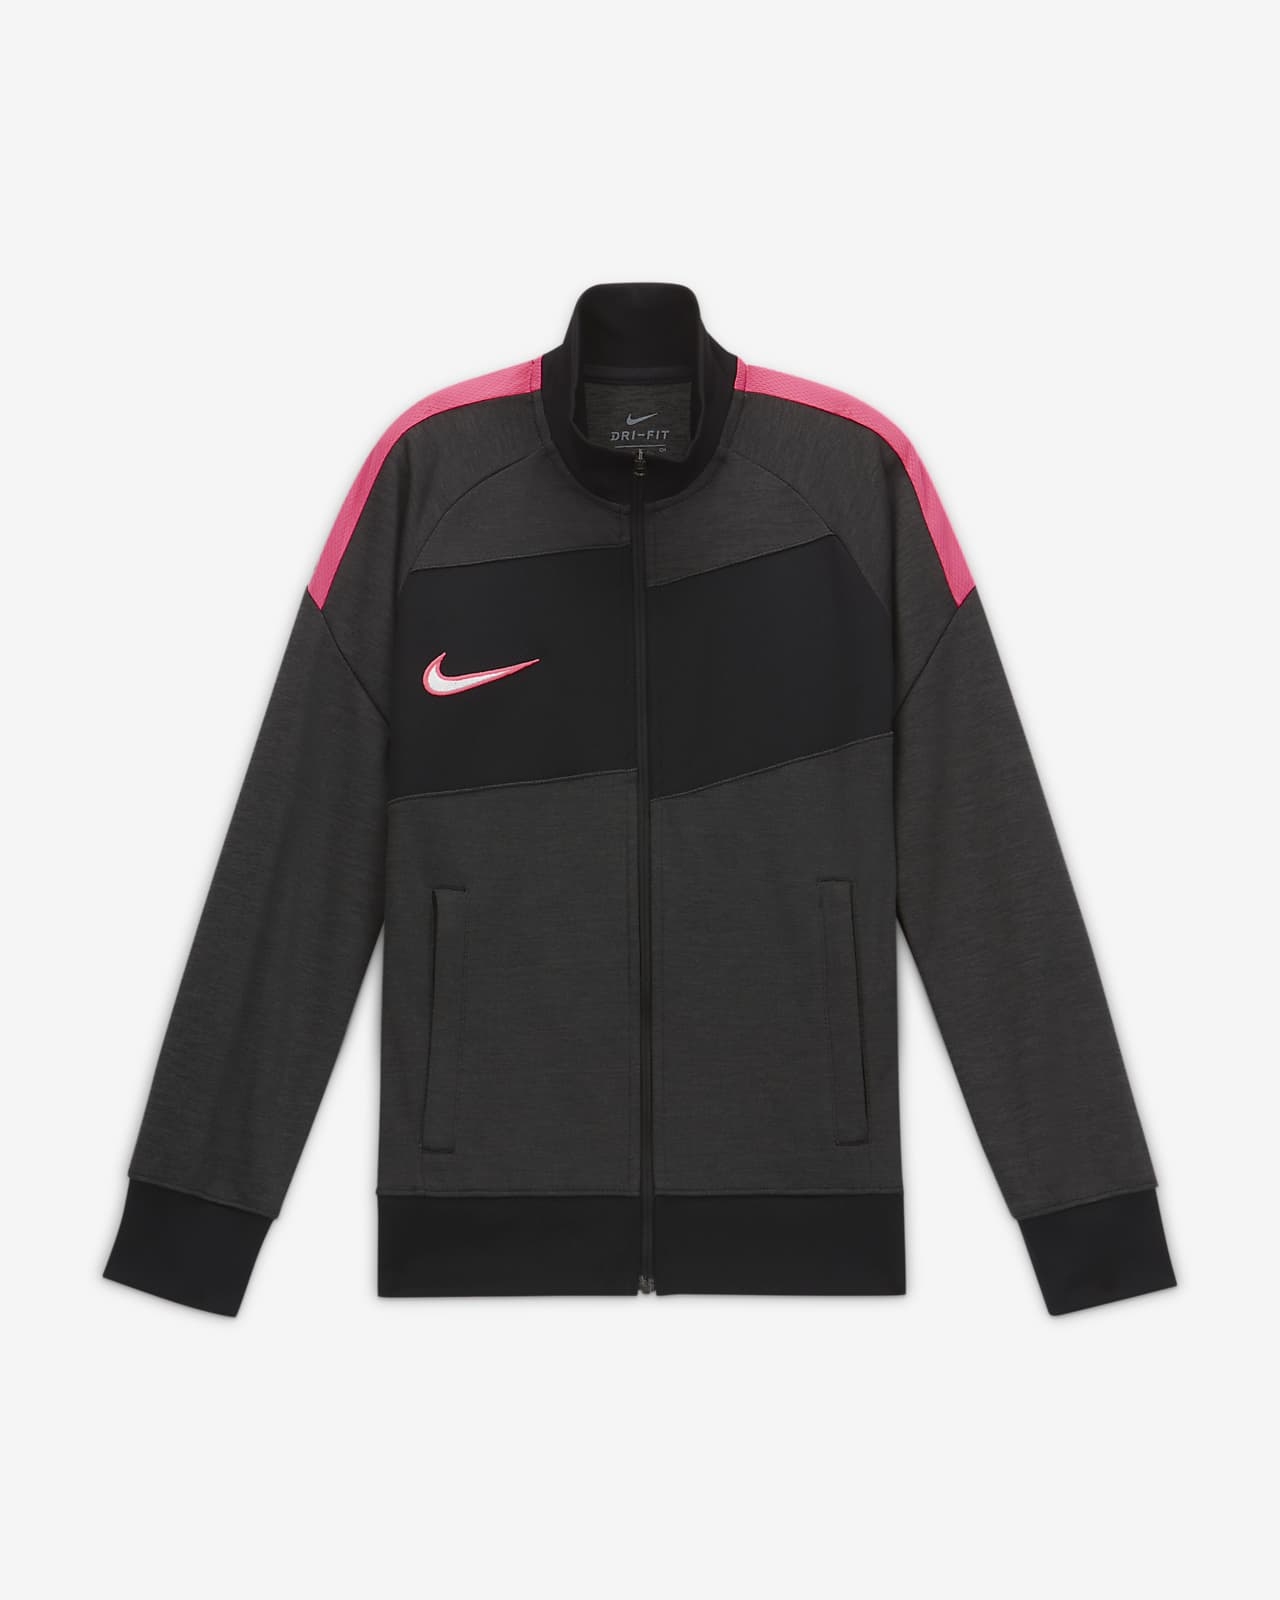 Nike Dri-FIT Academy Older Kids' Knit Football Tracksuit Jacket